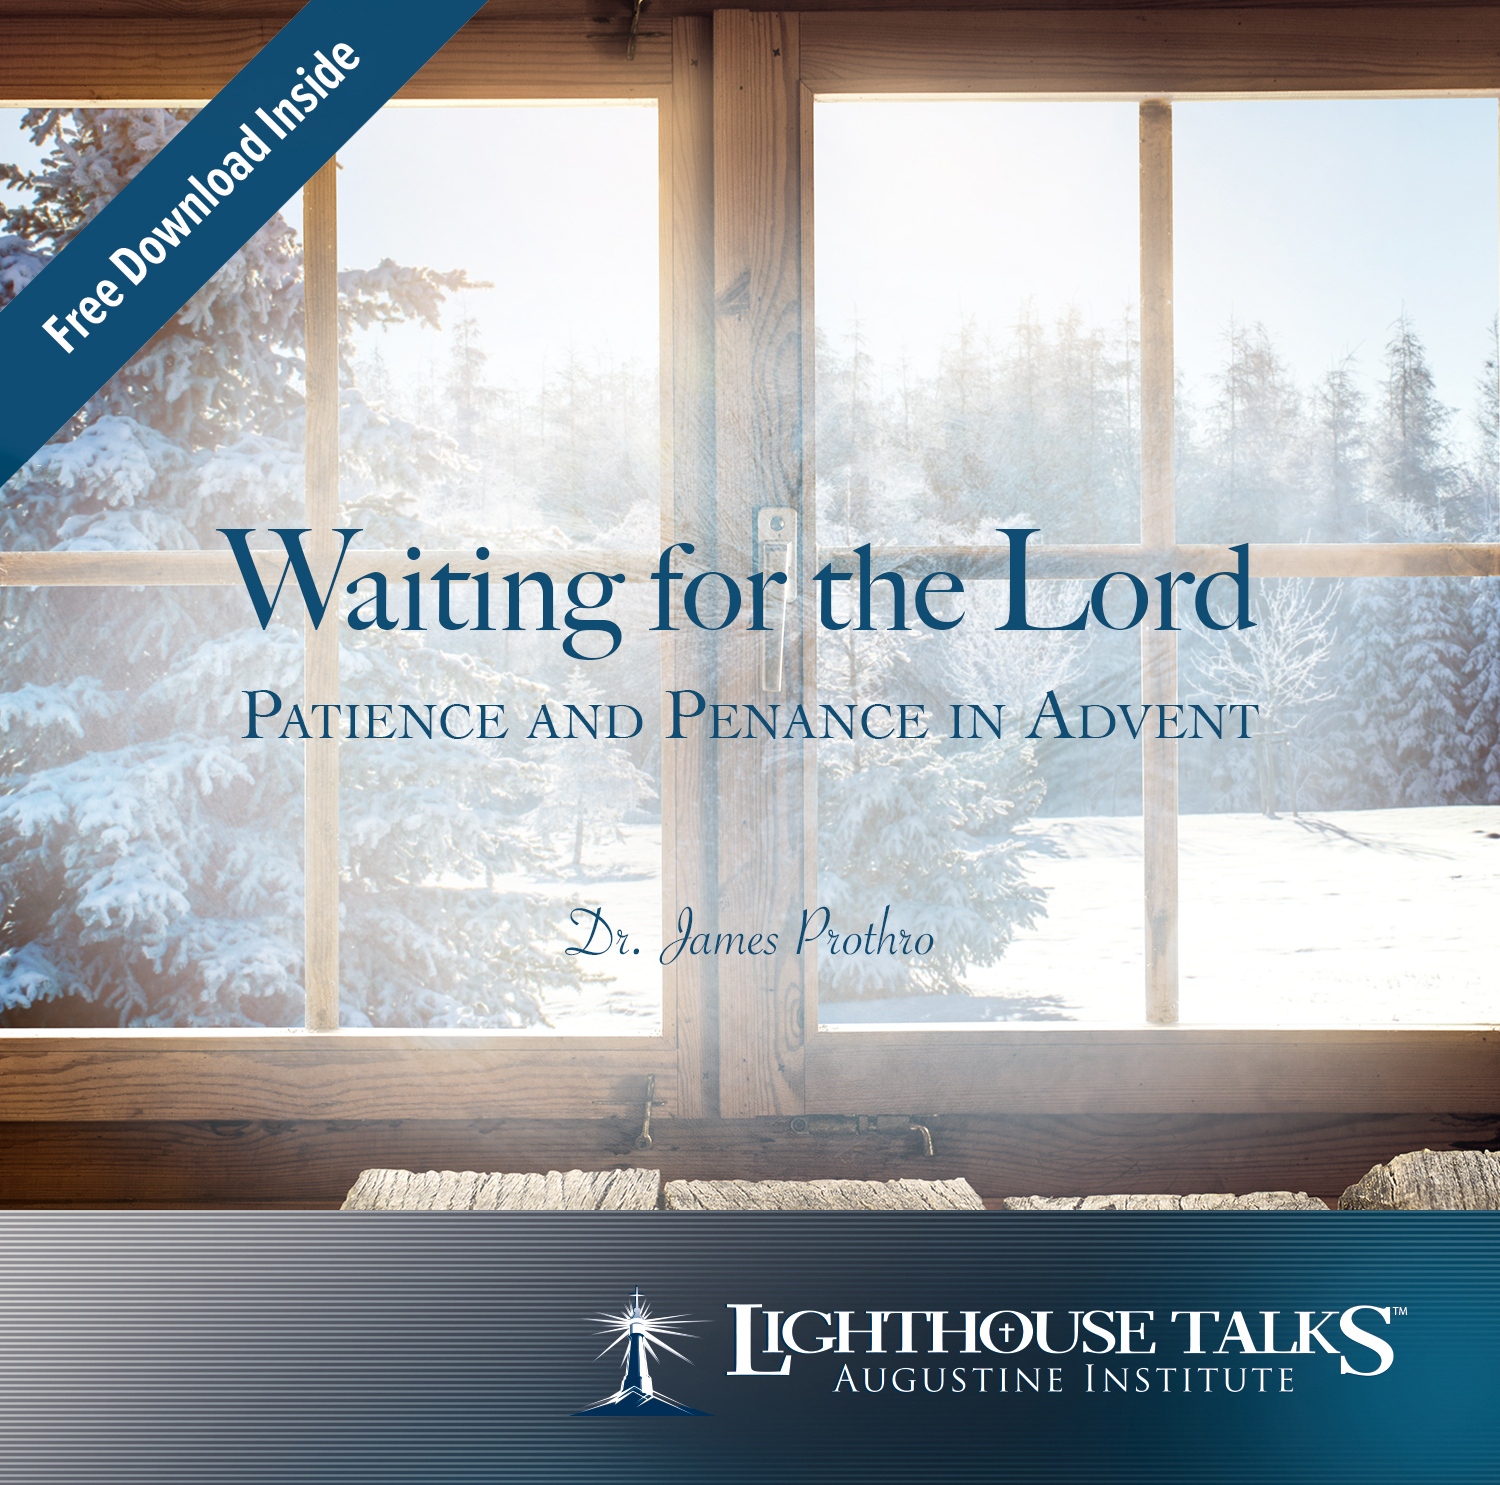 Waiting for the Lord: Patience and Penance in Advent